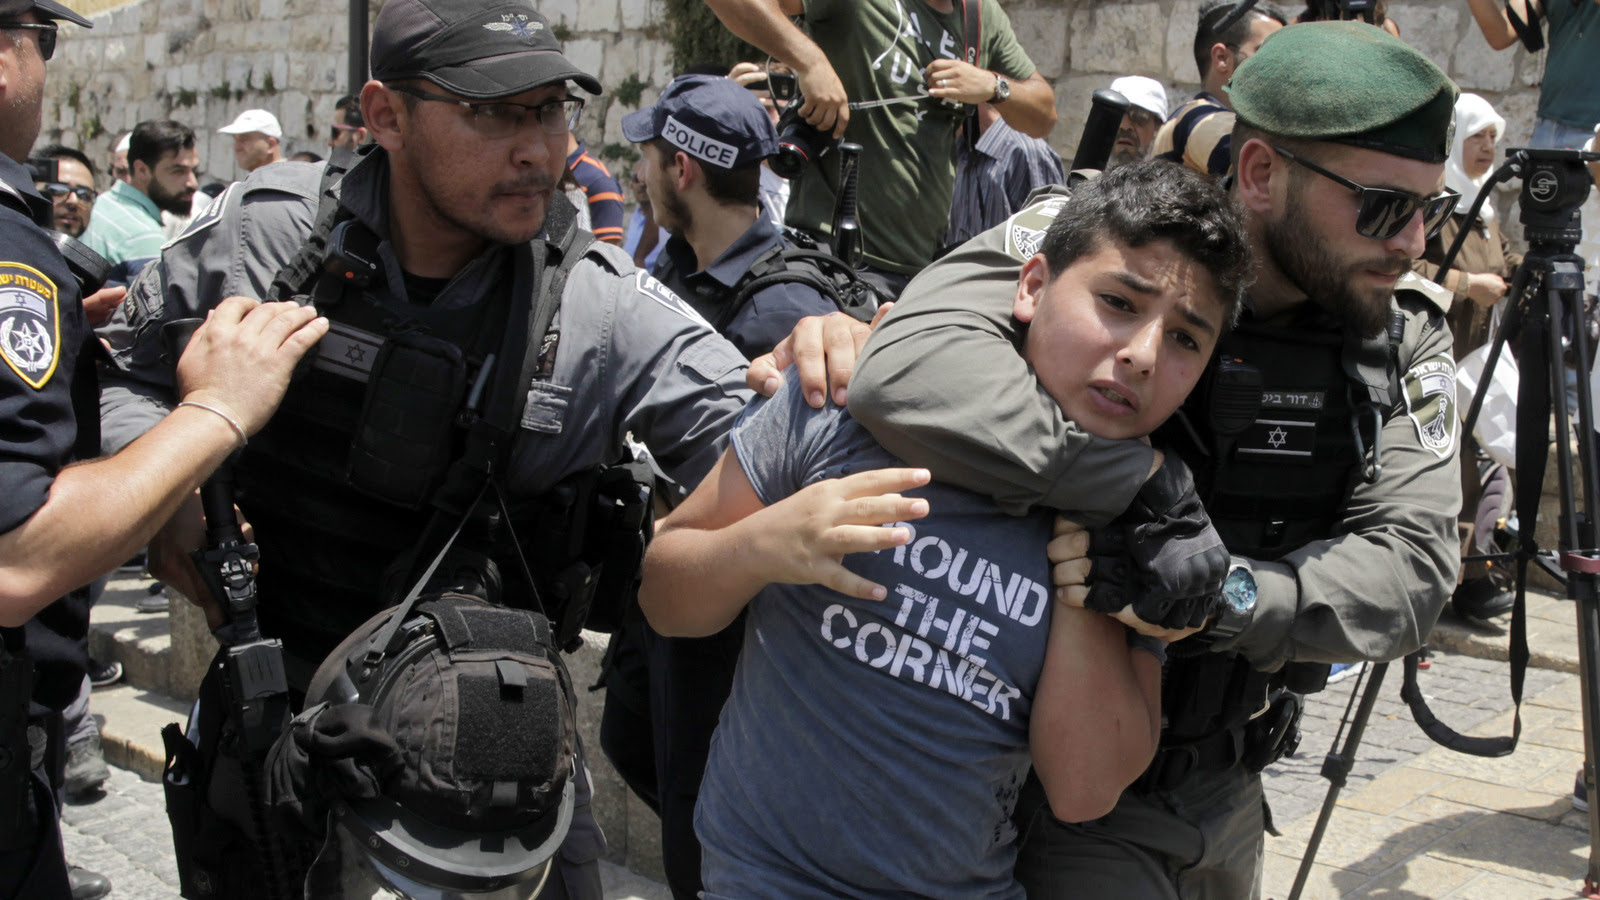 Israeli police place a Palestinian boy in a chokehold in Jerusalem's Old City, July 17, 2017. Muslims boycotted the Jerusalem holy site in a gesture of protest after Israel denied access to Muslims to Islam's second holiest site. (AP/Mahmoud Illean)